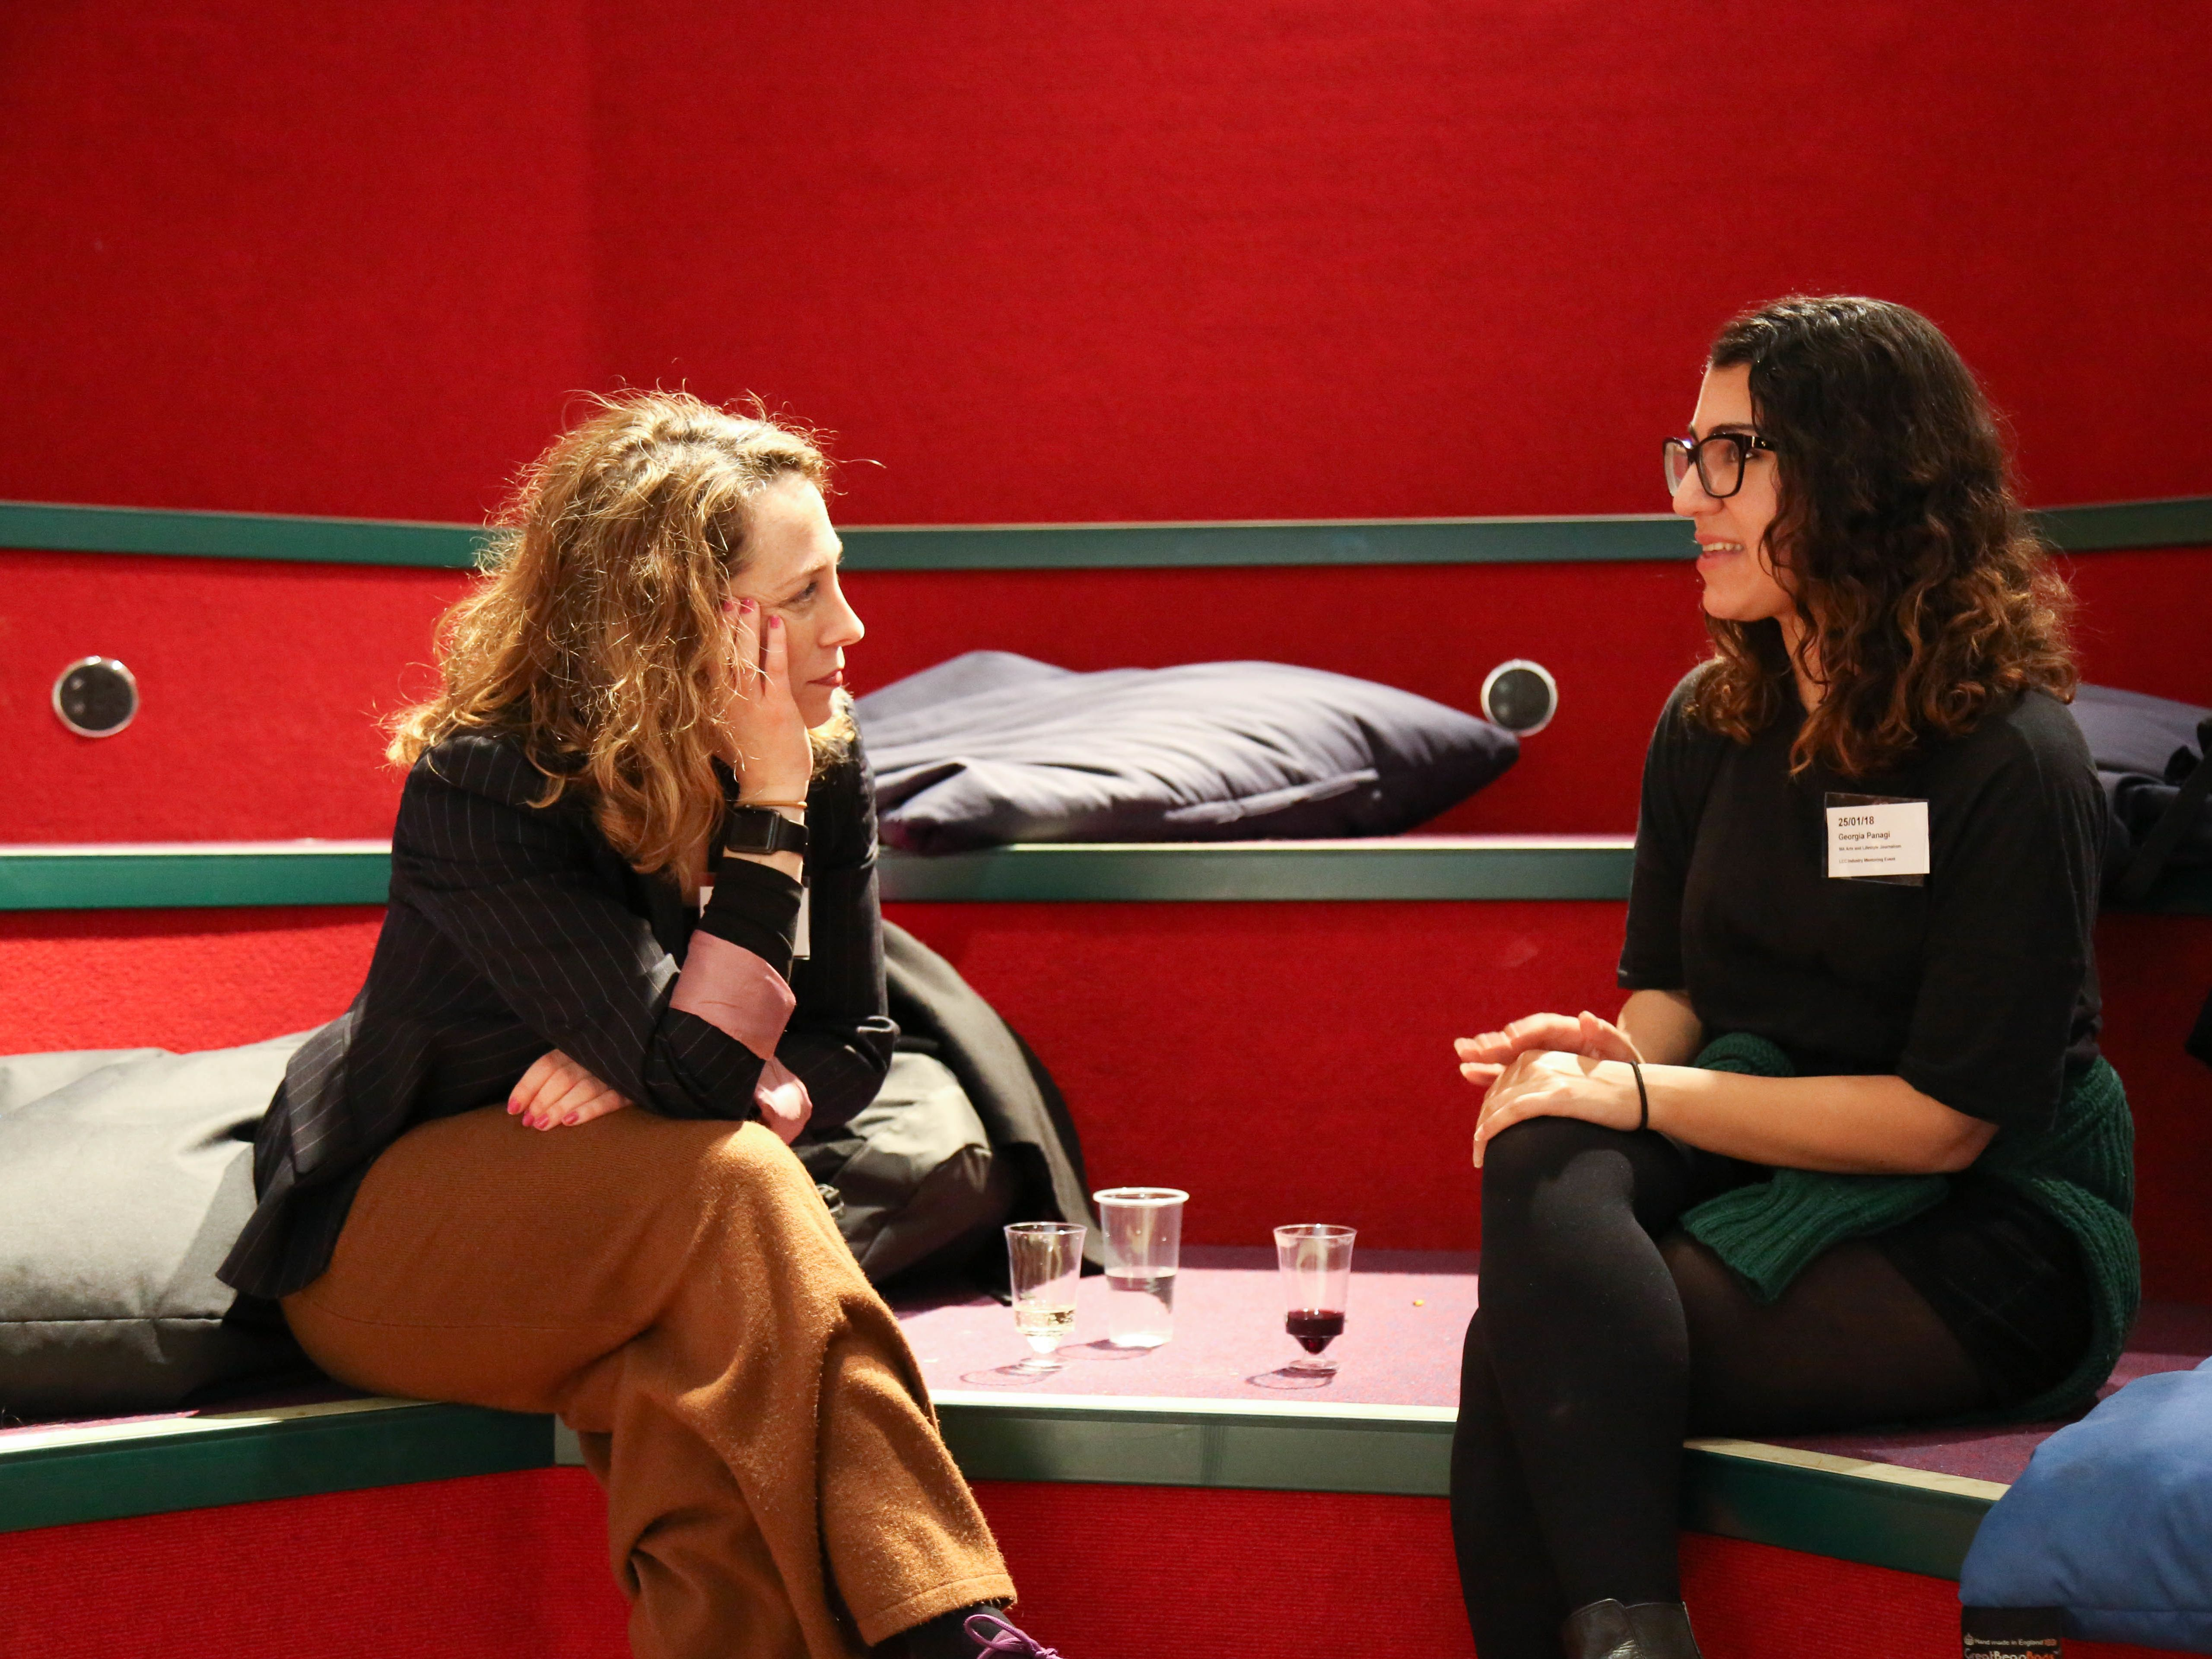 Industry Mentoring Scheme mentor and mentee discuss working in the creative industries